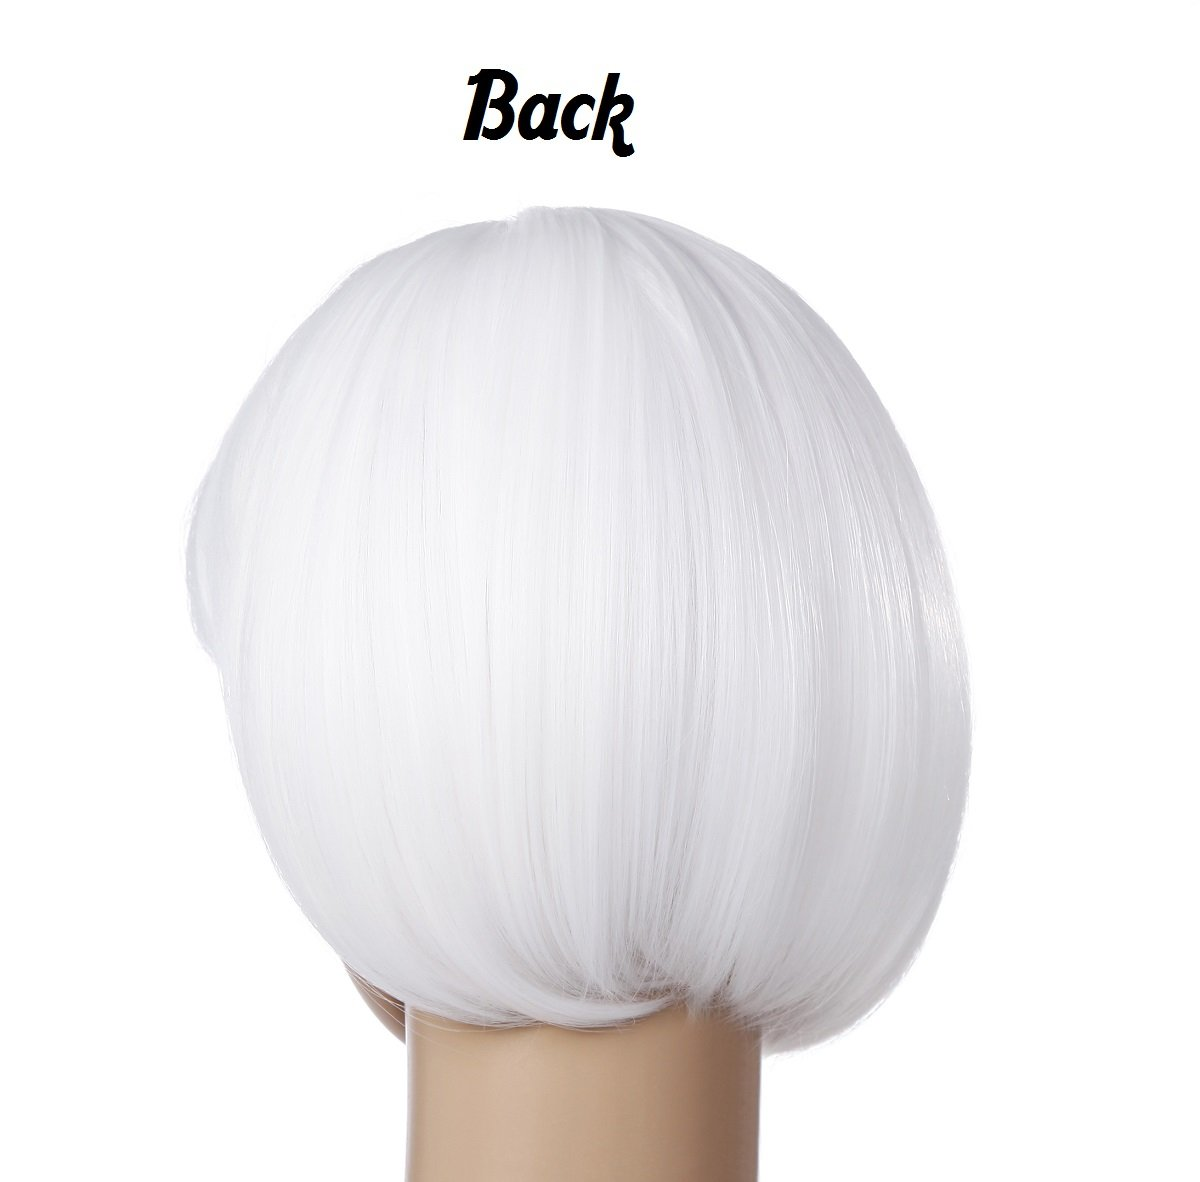 Short Straight Bob Hair Wigs 10'' Bright White Synthetic Party Costume Wig (White) by Liasun (Image #2)